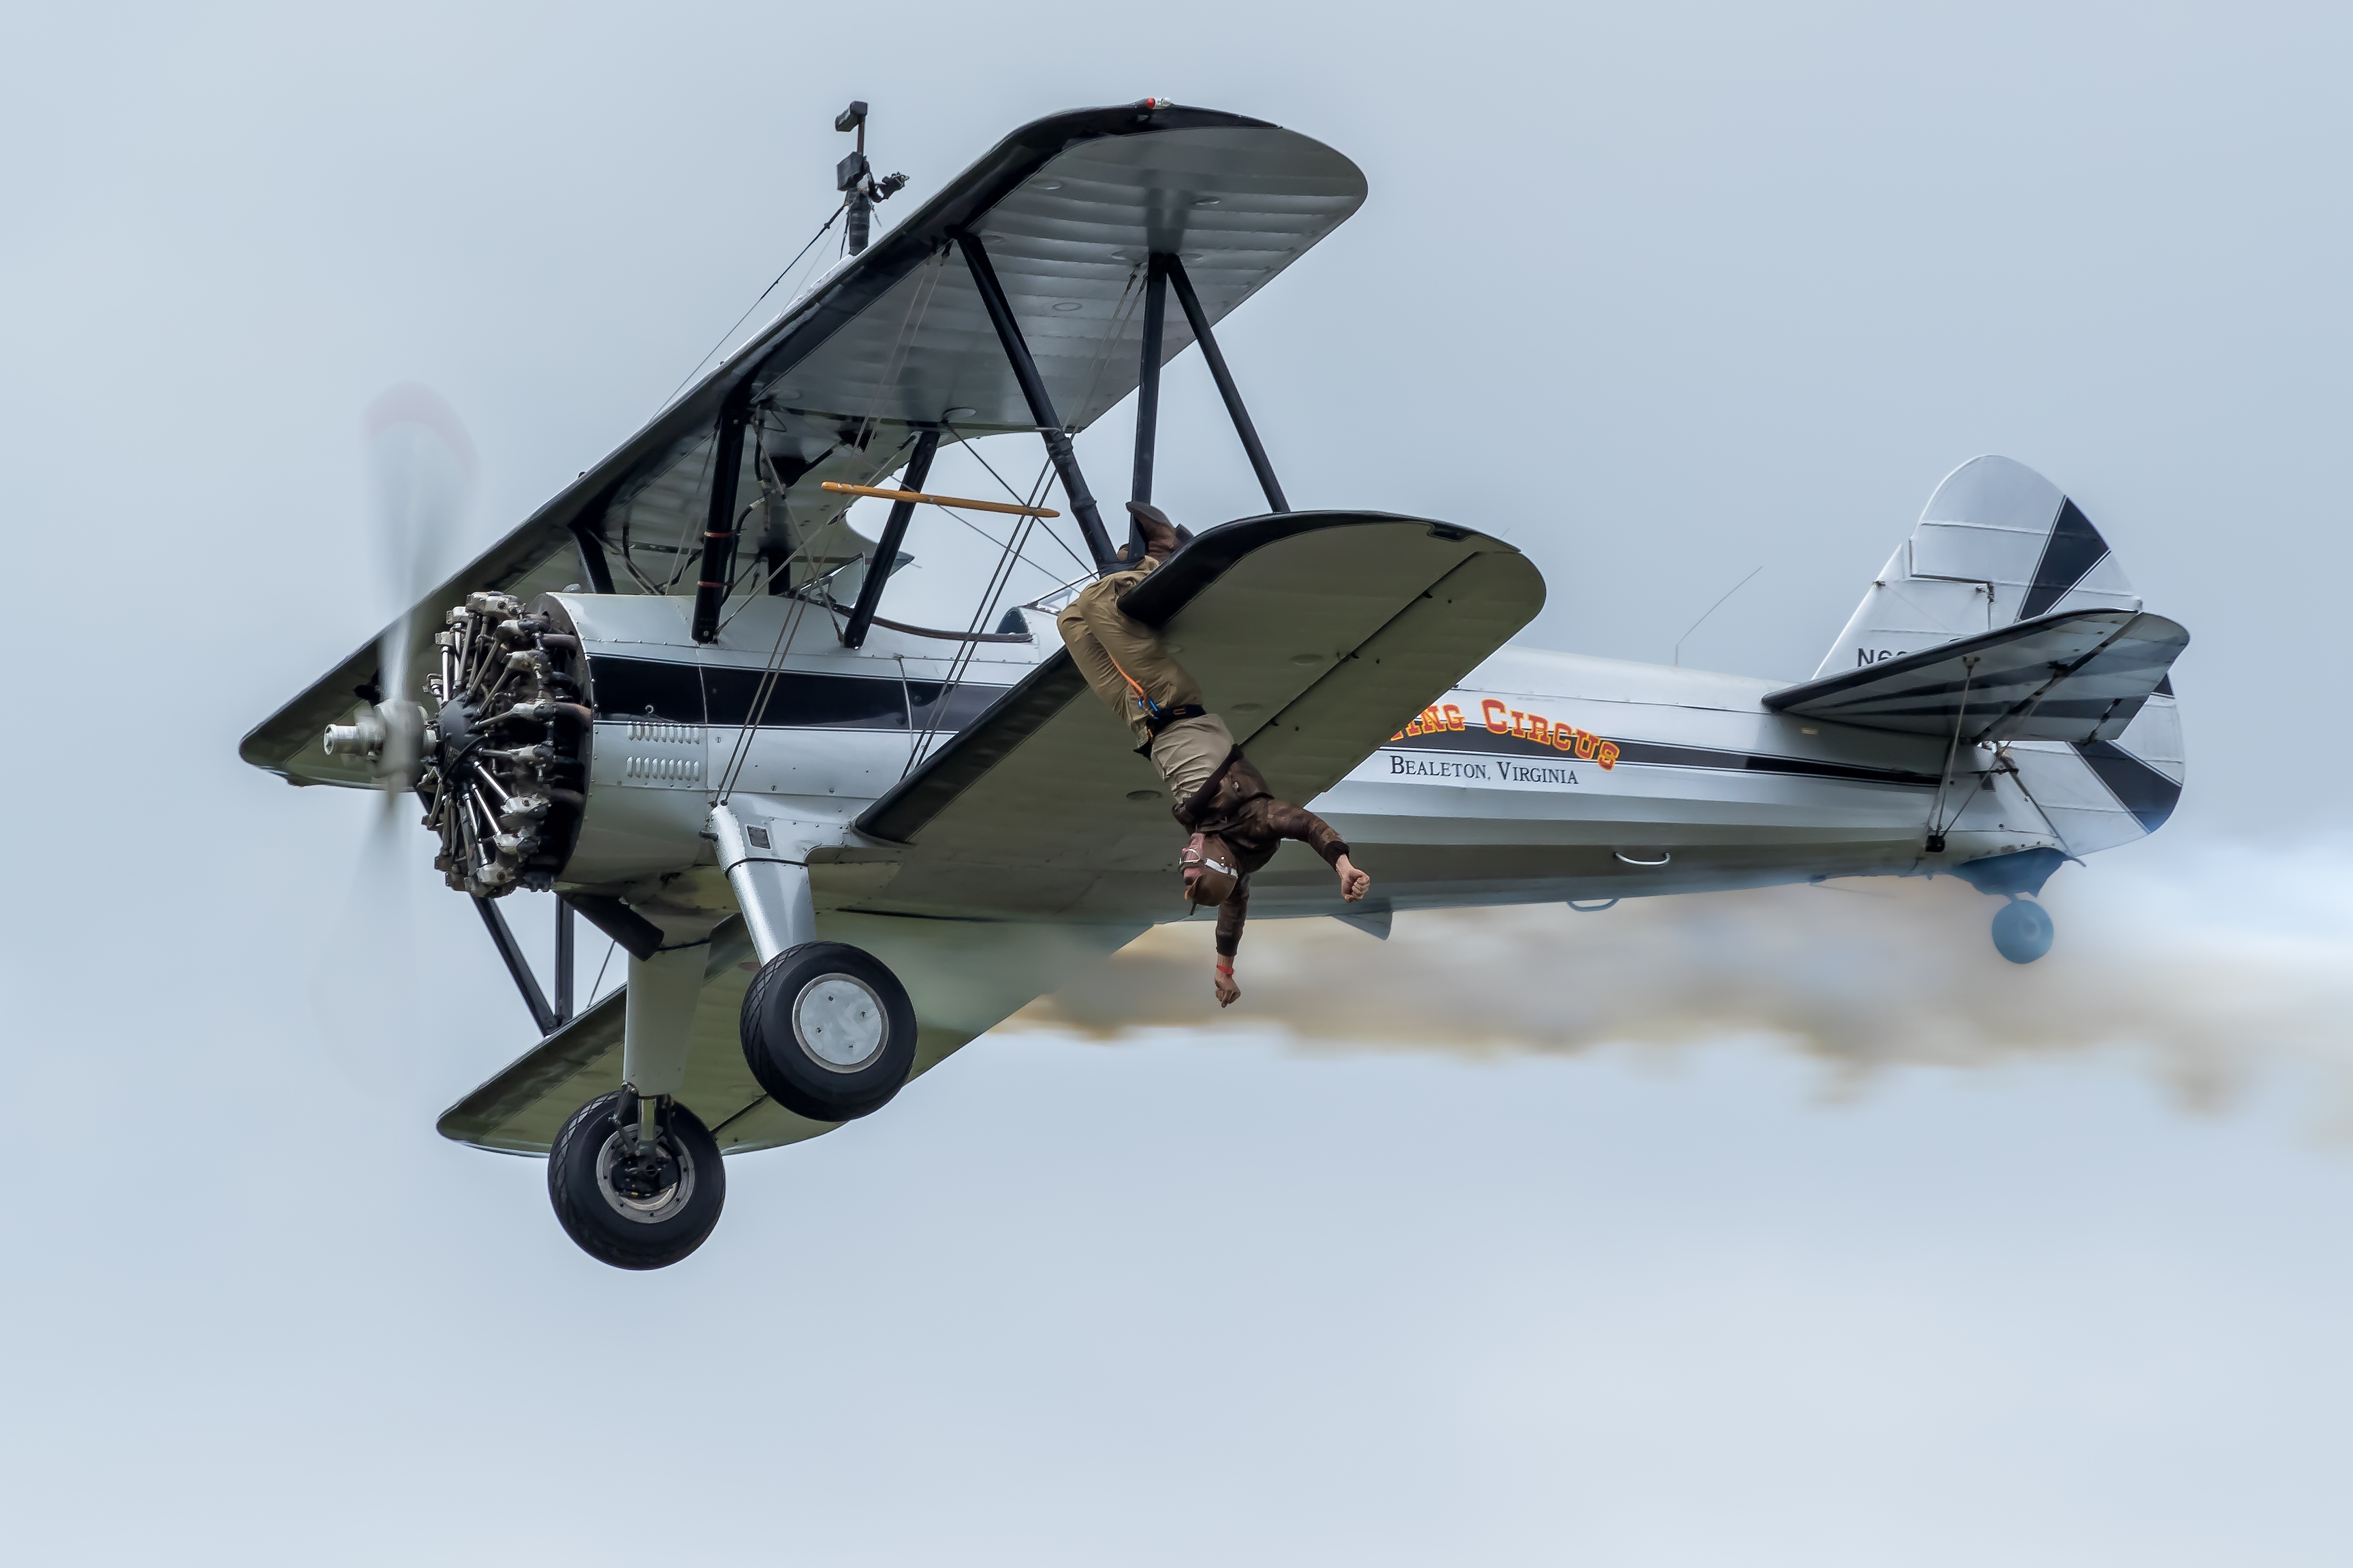 The Flying Circus Wingwalkers